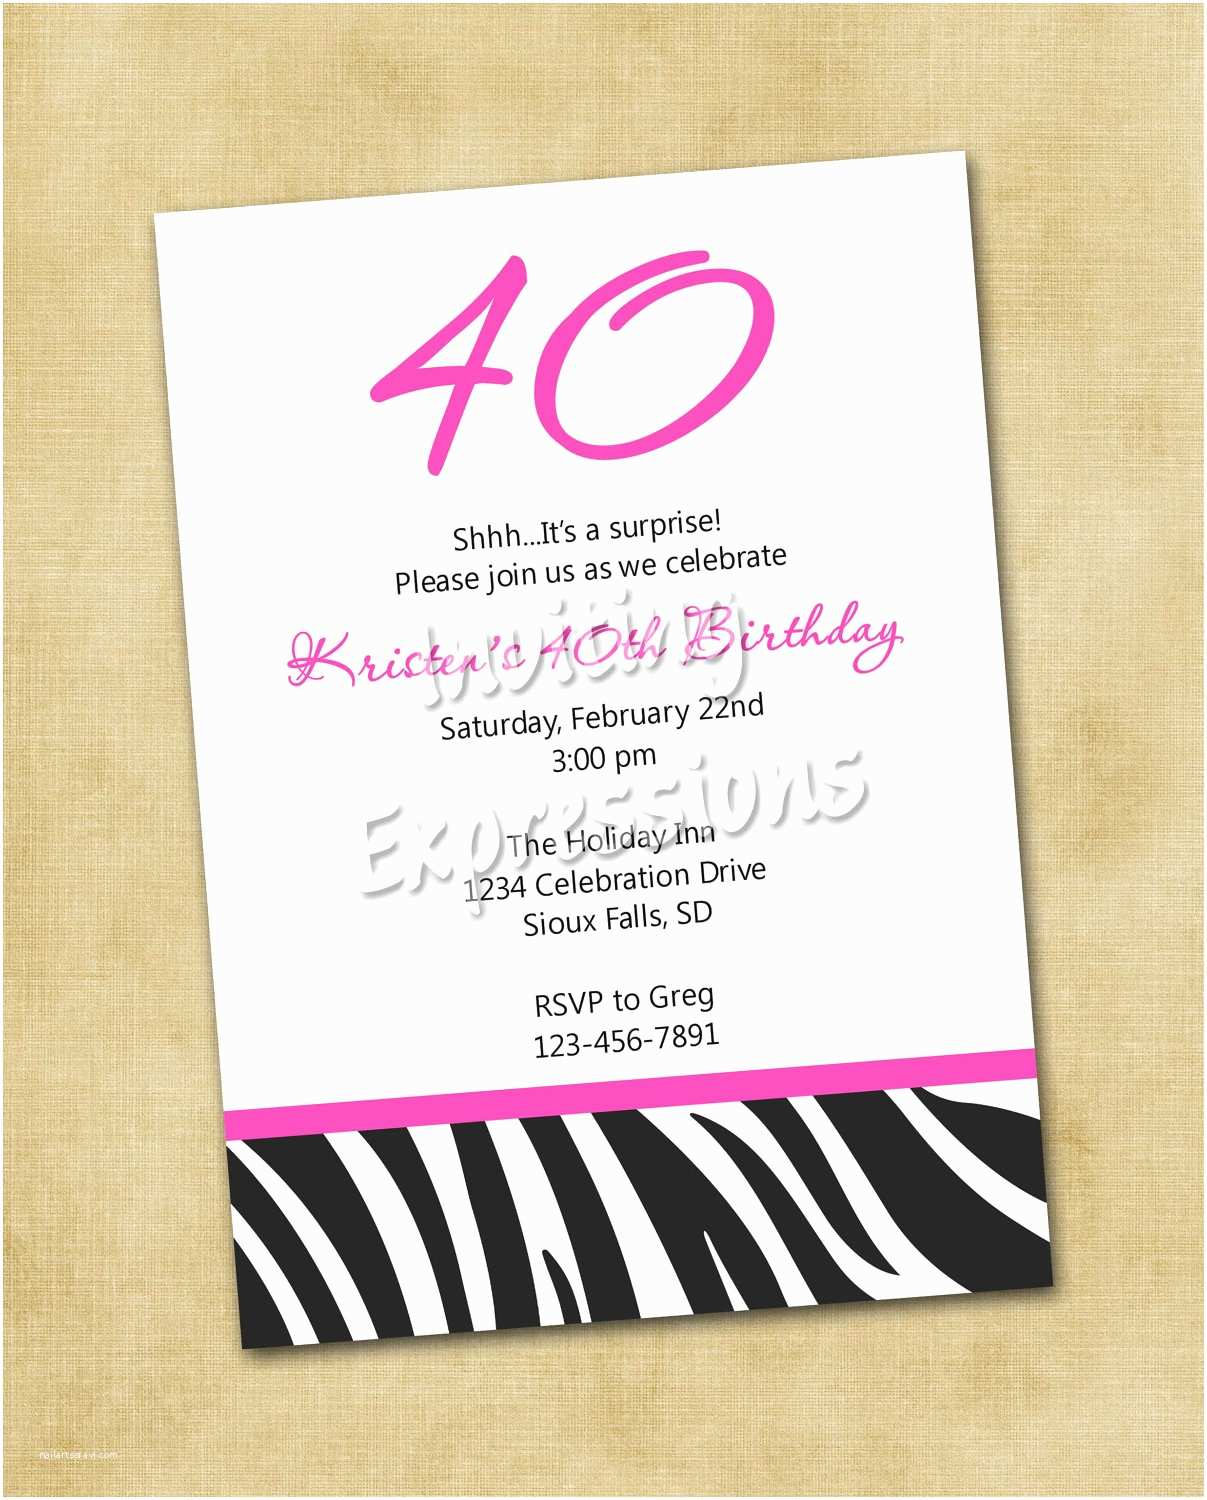 Birthday Party Invitation Text top 13 40th Birthday Party Invitation Wording